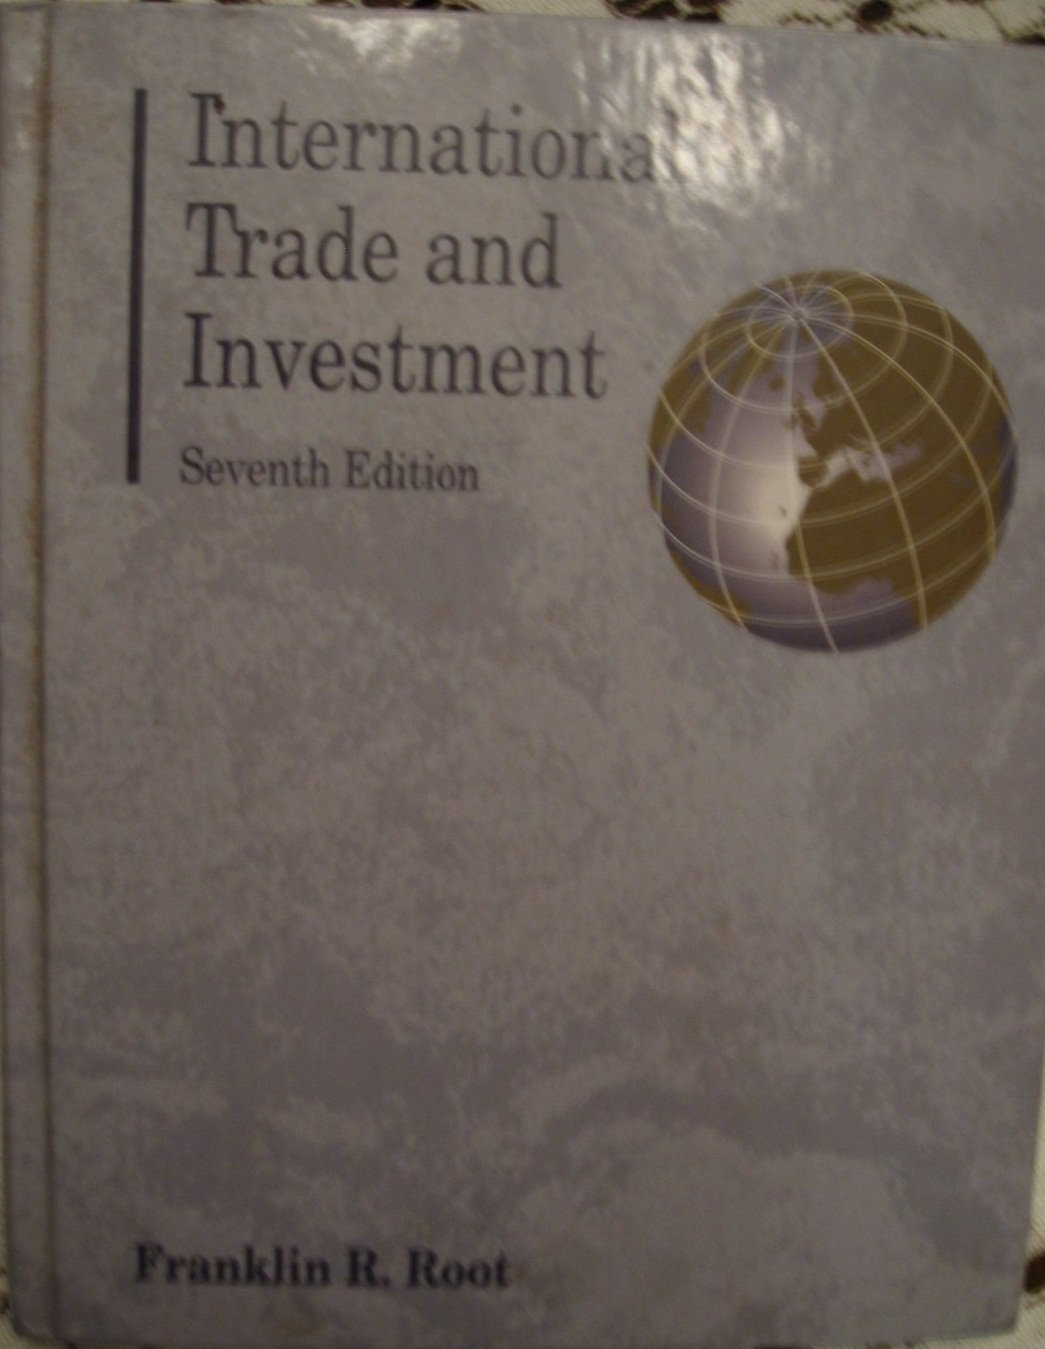 International Trade and Investment: Theory, Policy, Enterprise